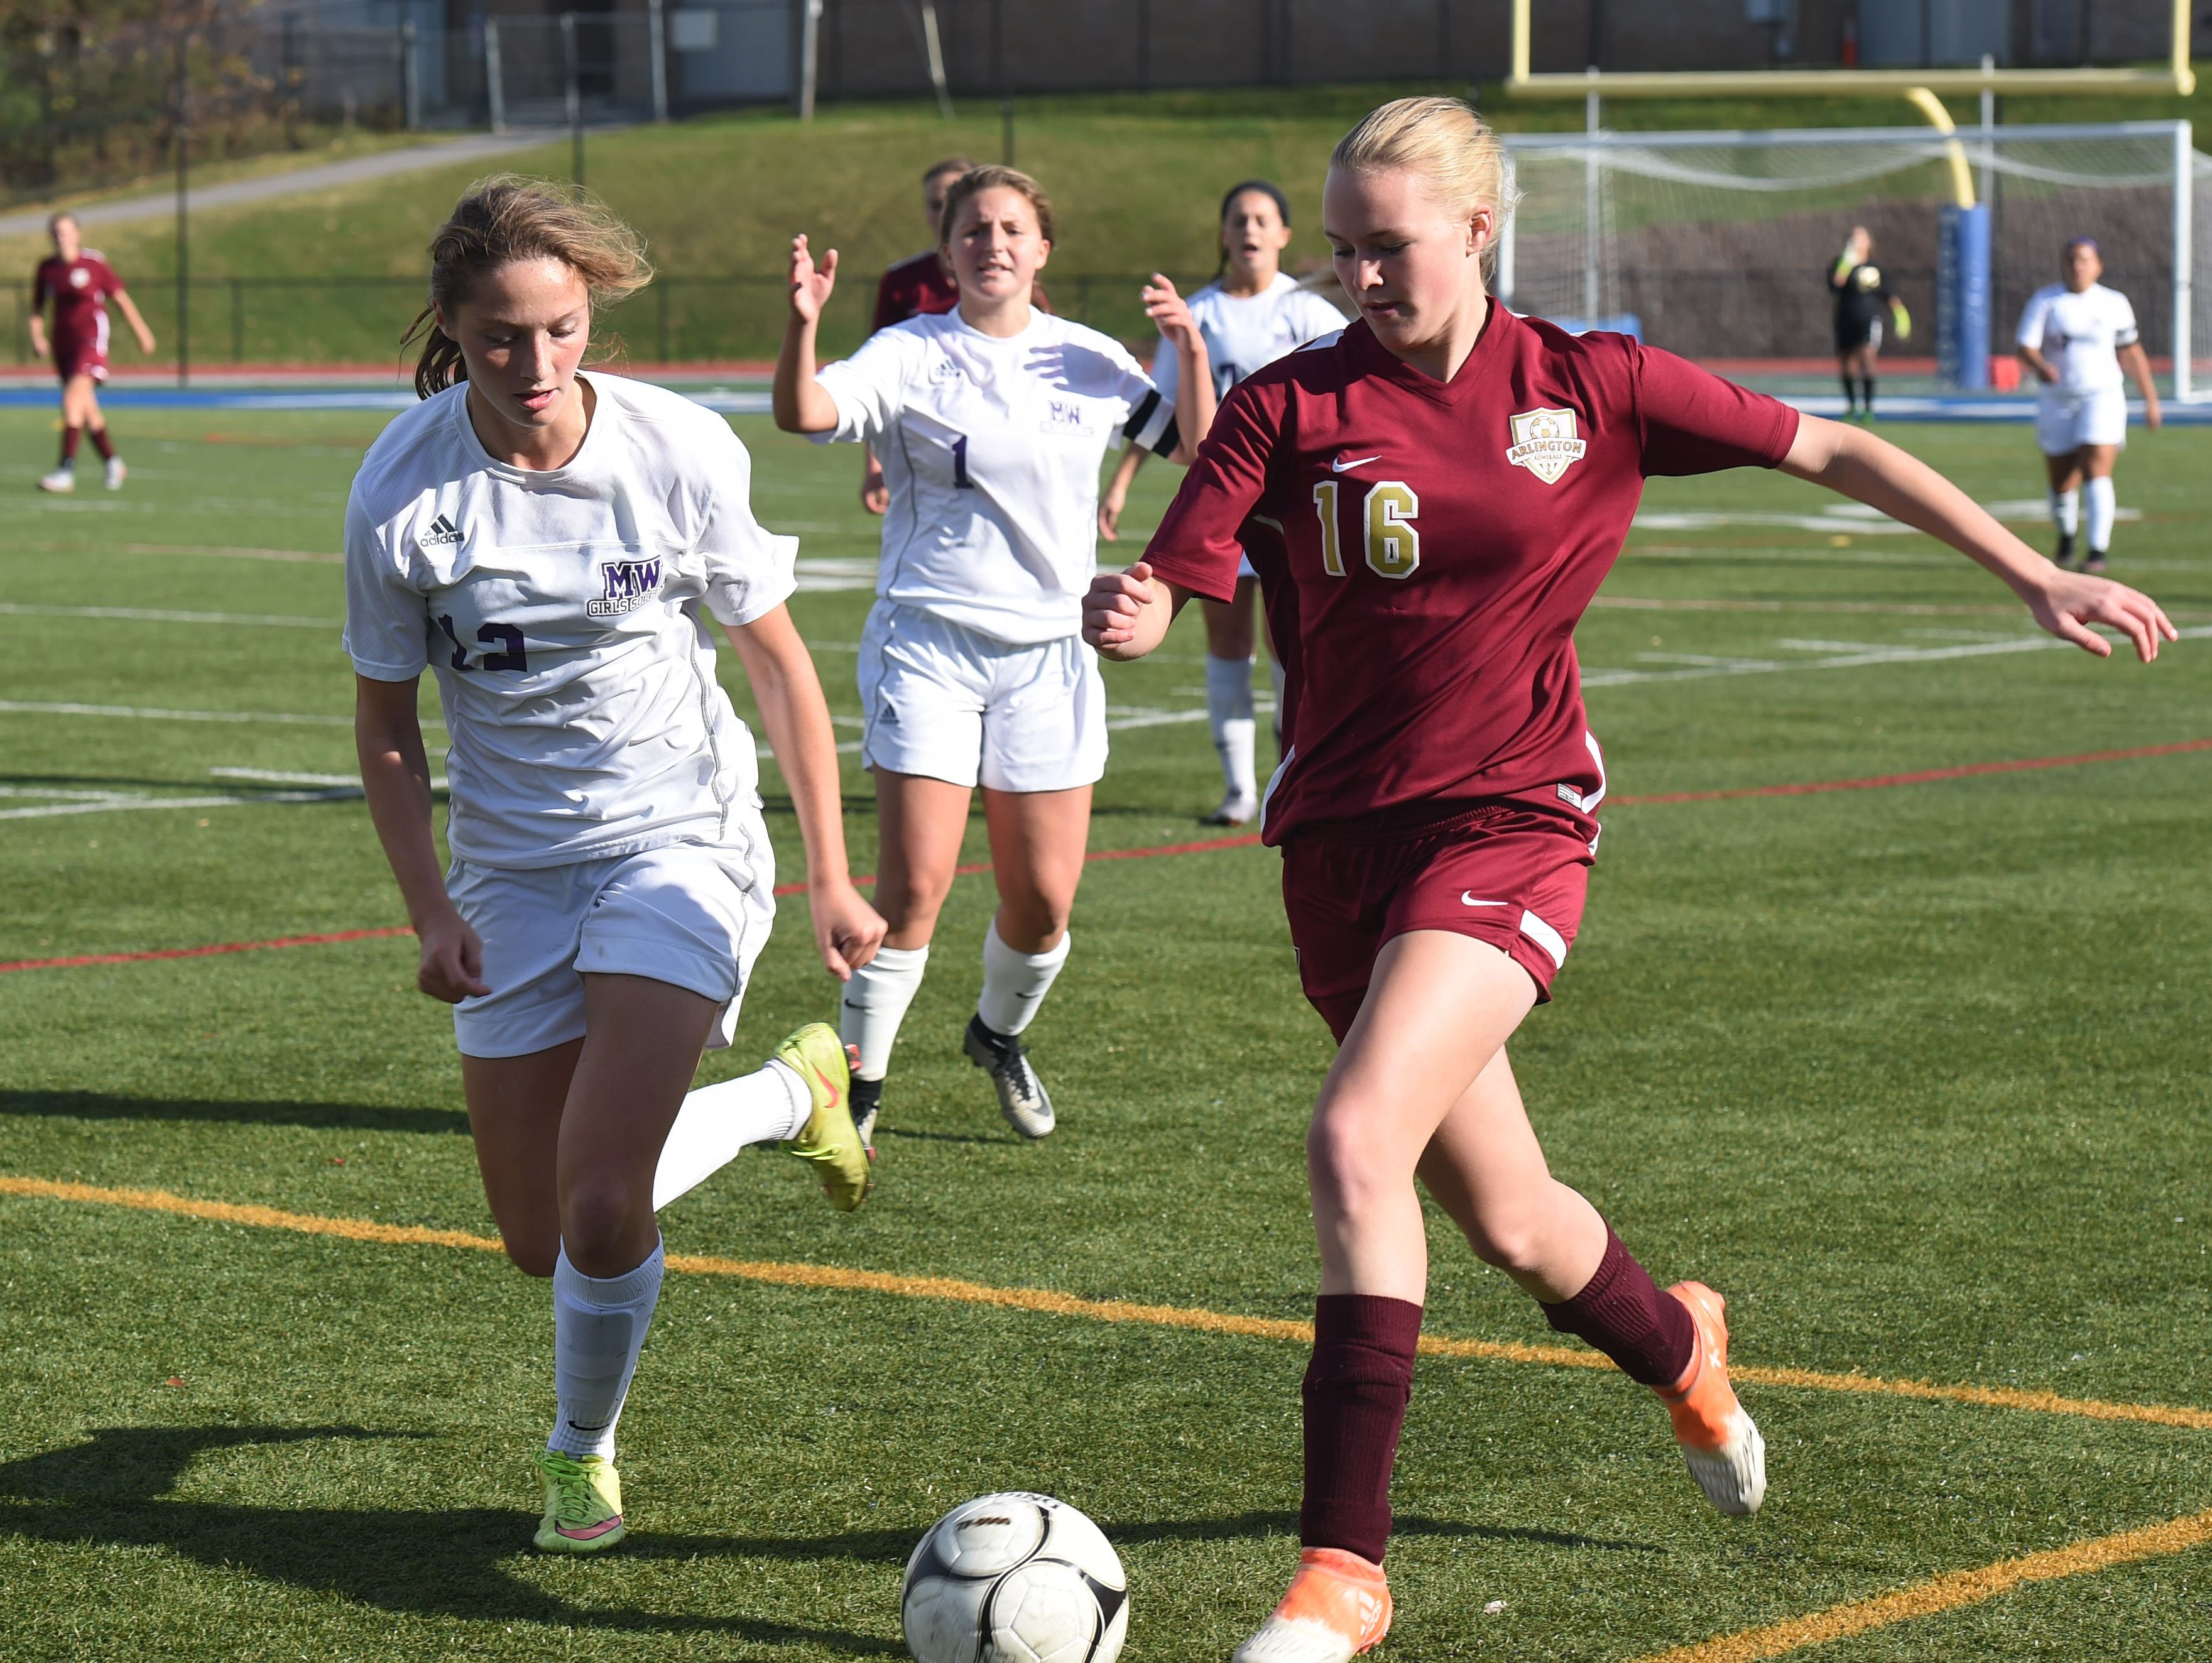 Arlington's Alexa Peruffo, right, takes the ball down the field as Monroe-Woodbury's Sydney Harwood, left, defends during Saturday's Class AA regional final.